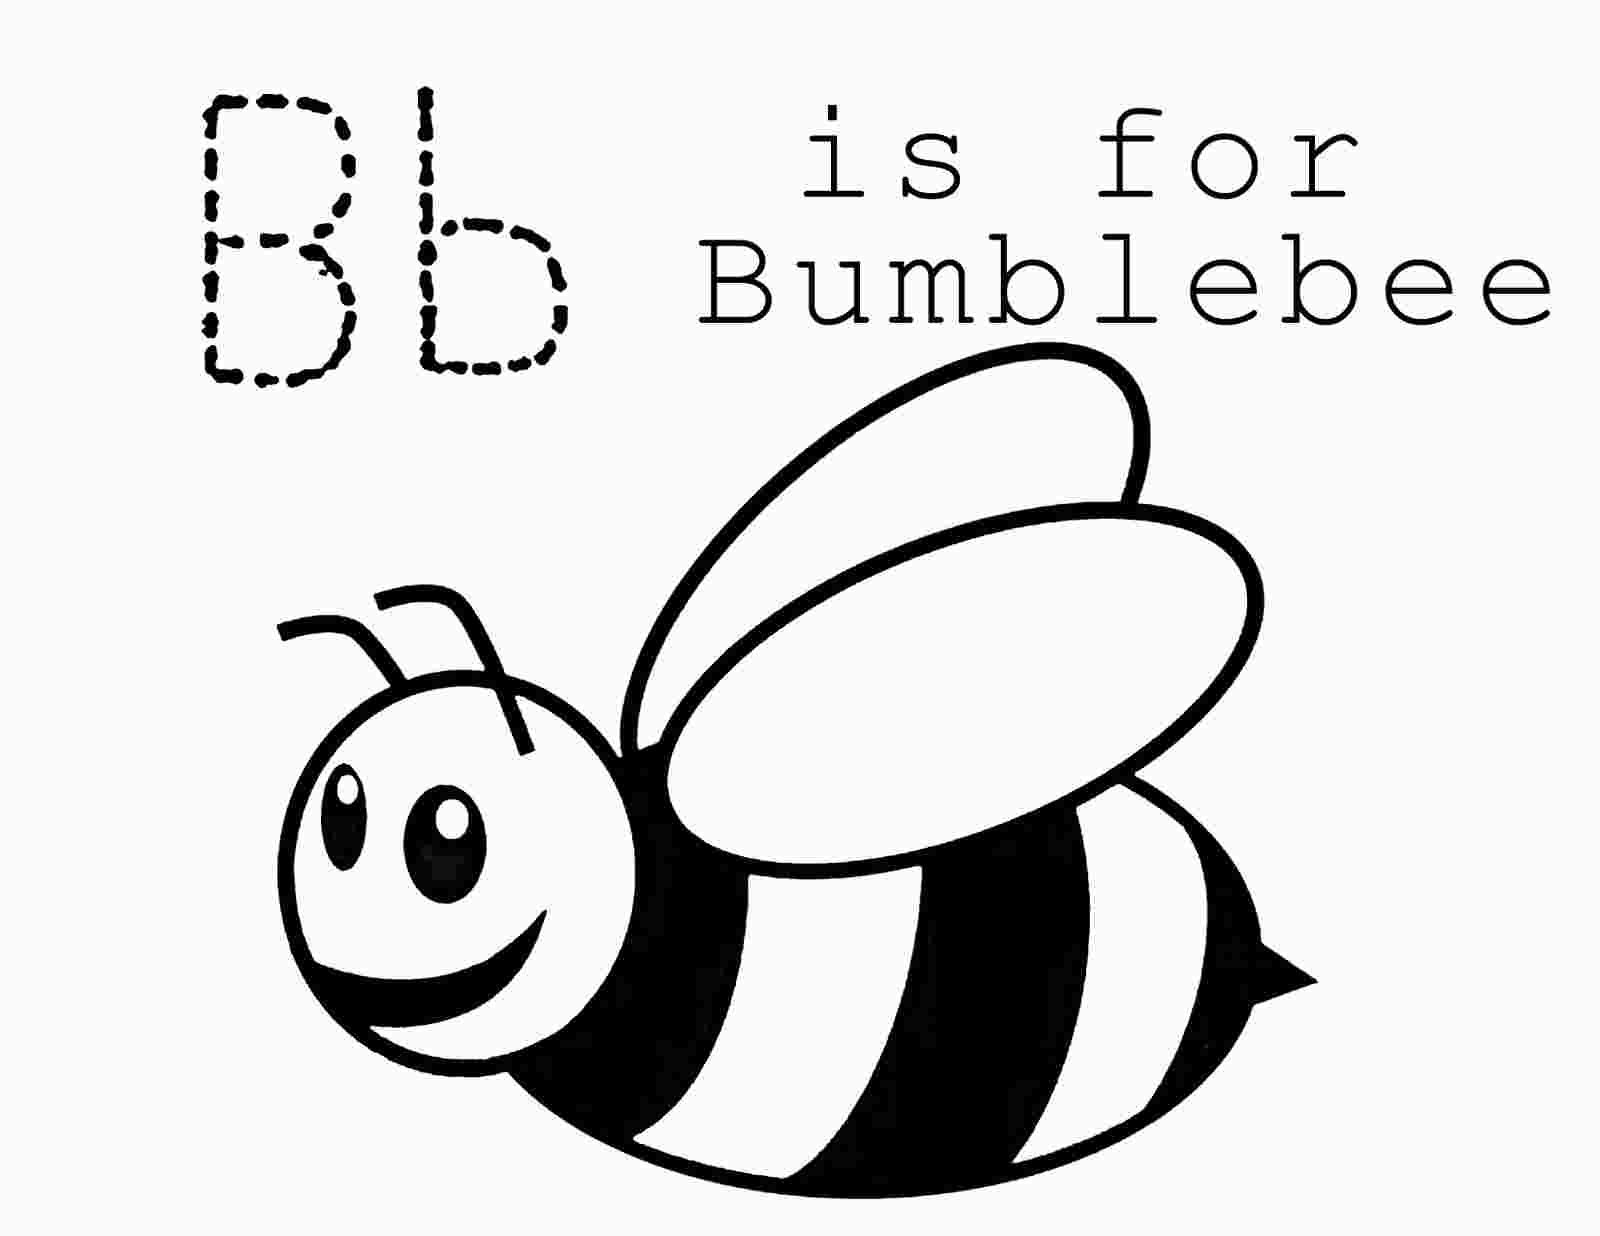 Printable Bumble Bee Coloring Page Bee Coloring Pages Coloring Pages For Kids Coloring Pages